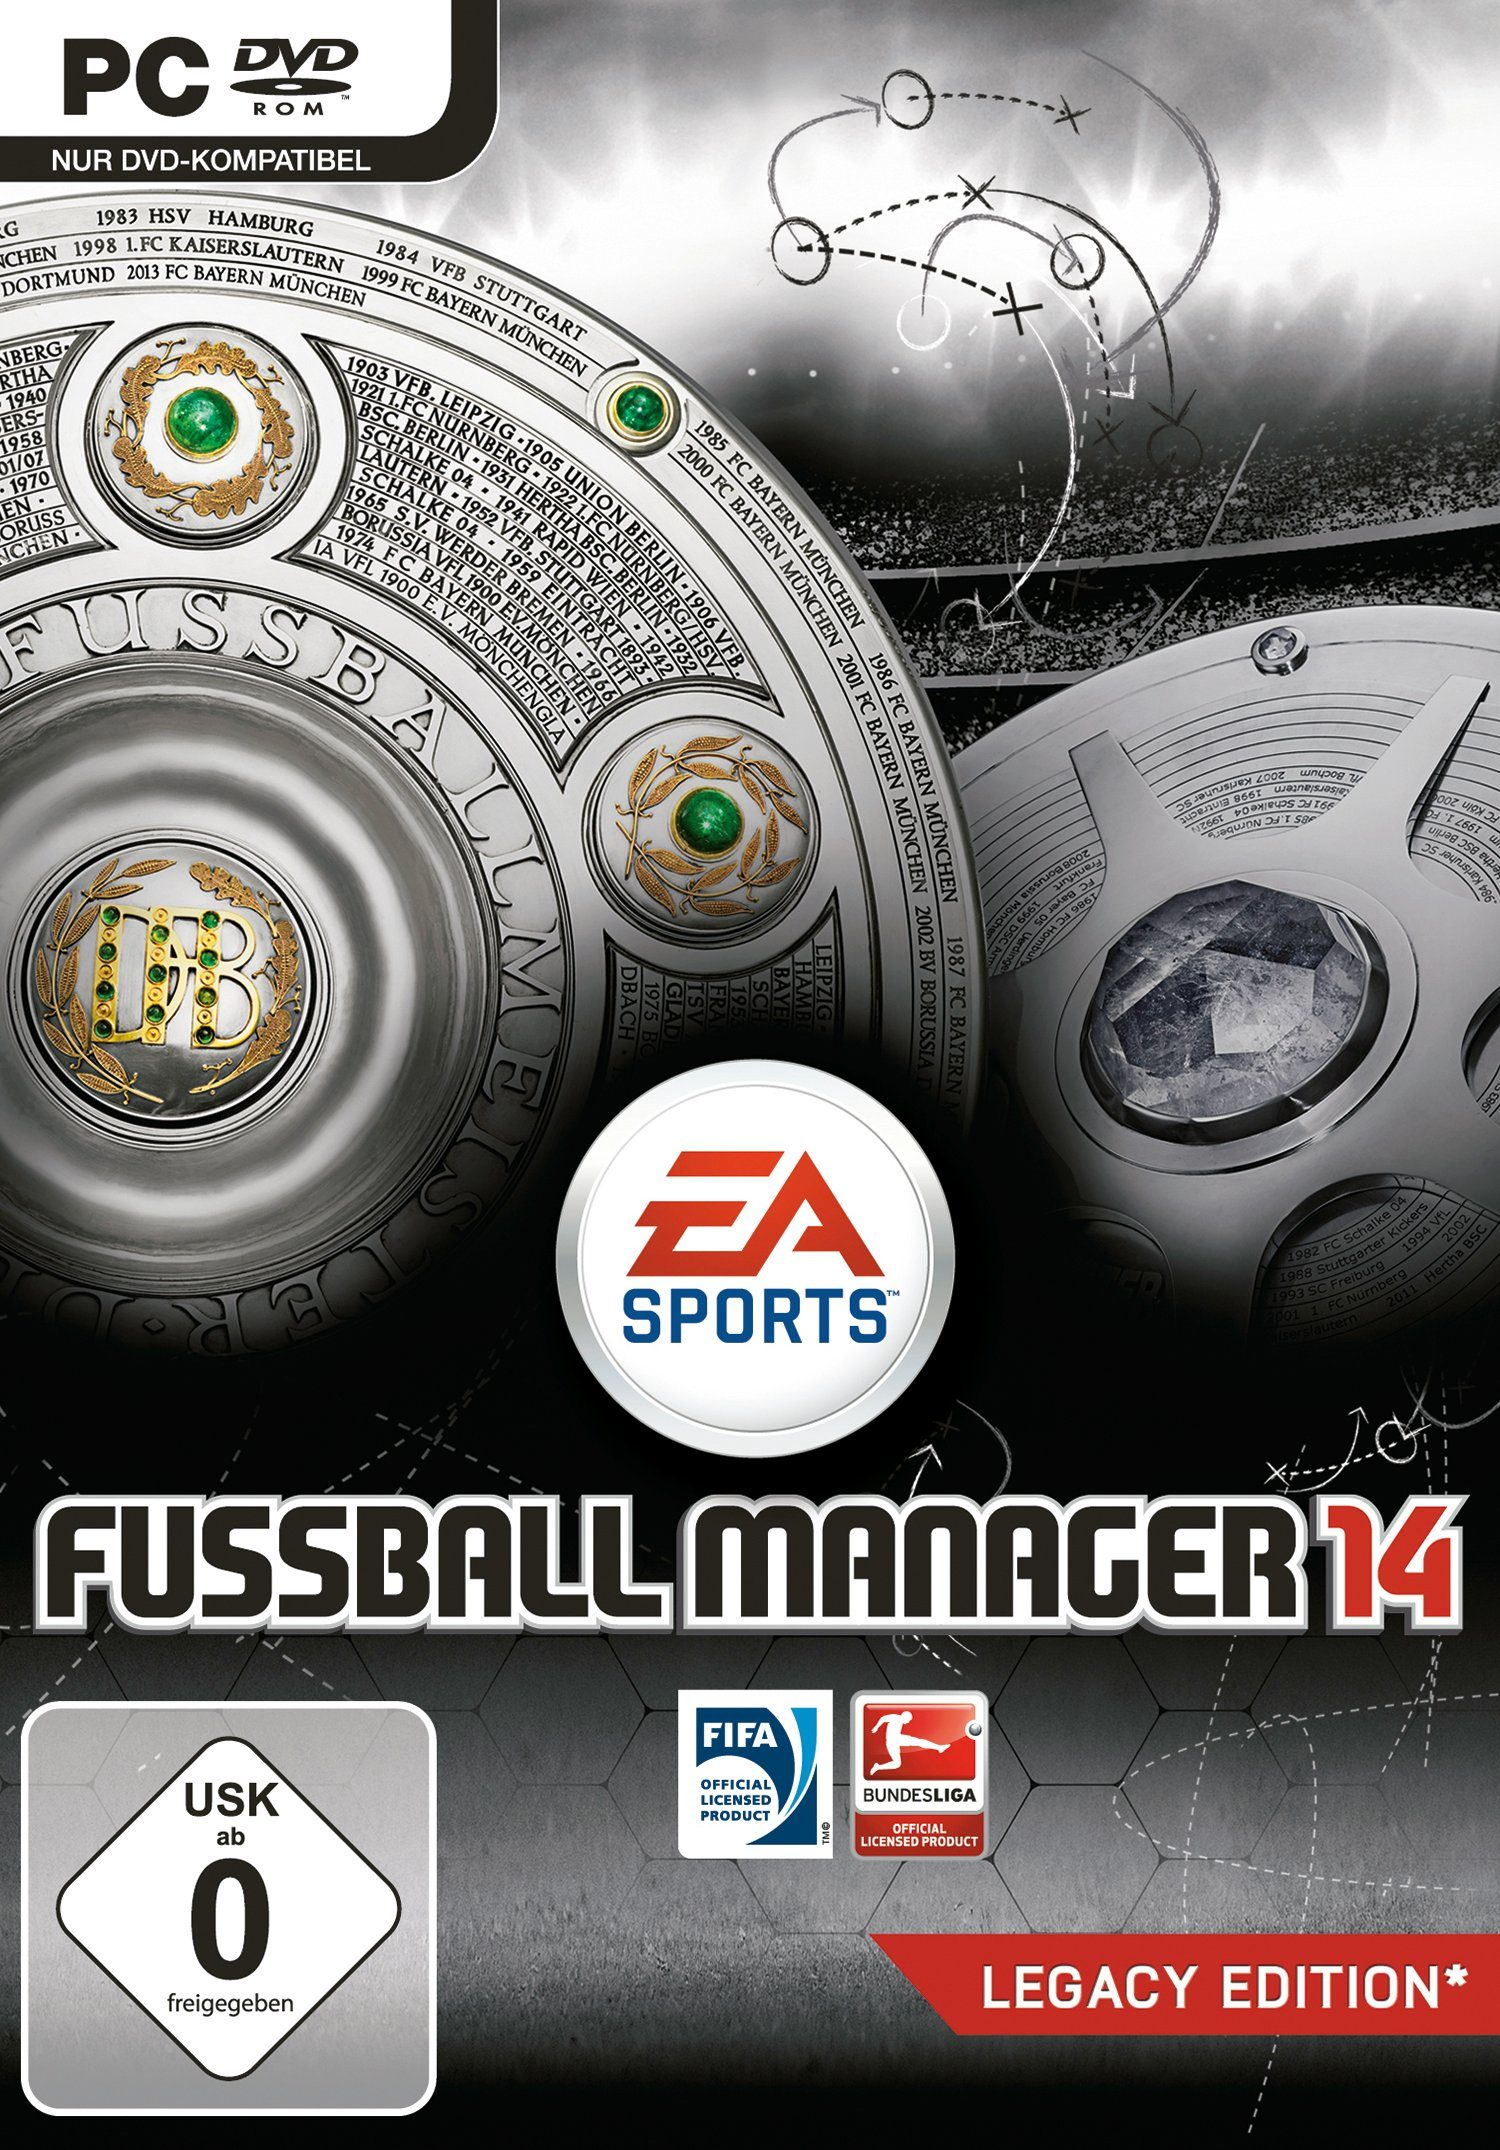 Electronic Arts Software Pyramide - PC Spiel »Fussball Manager 14«